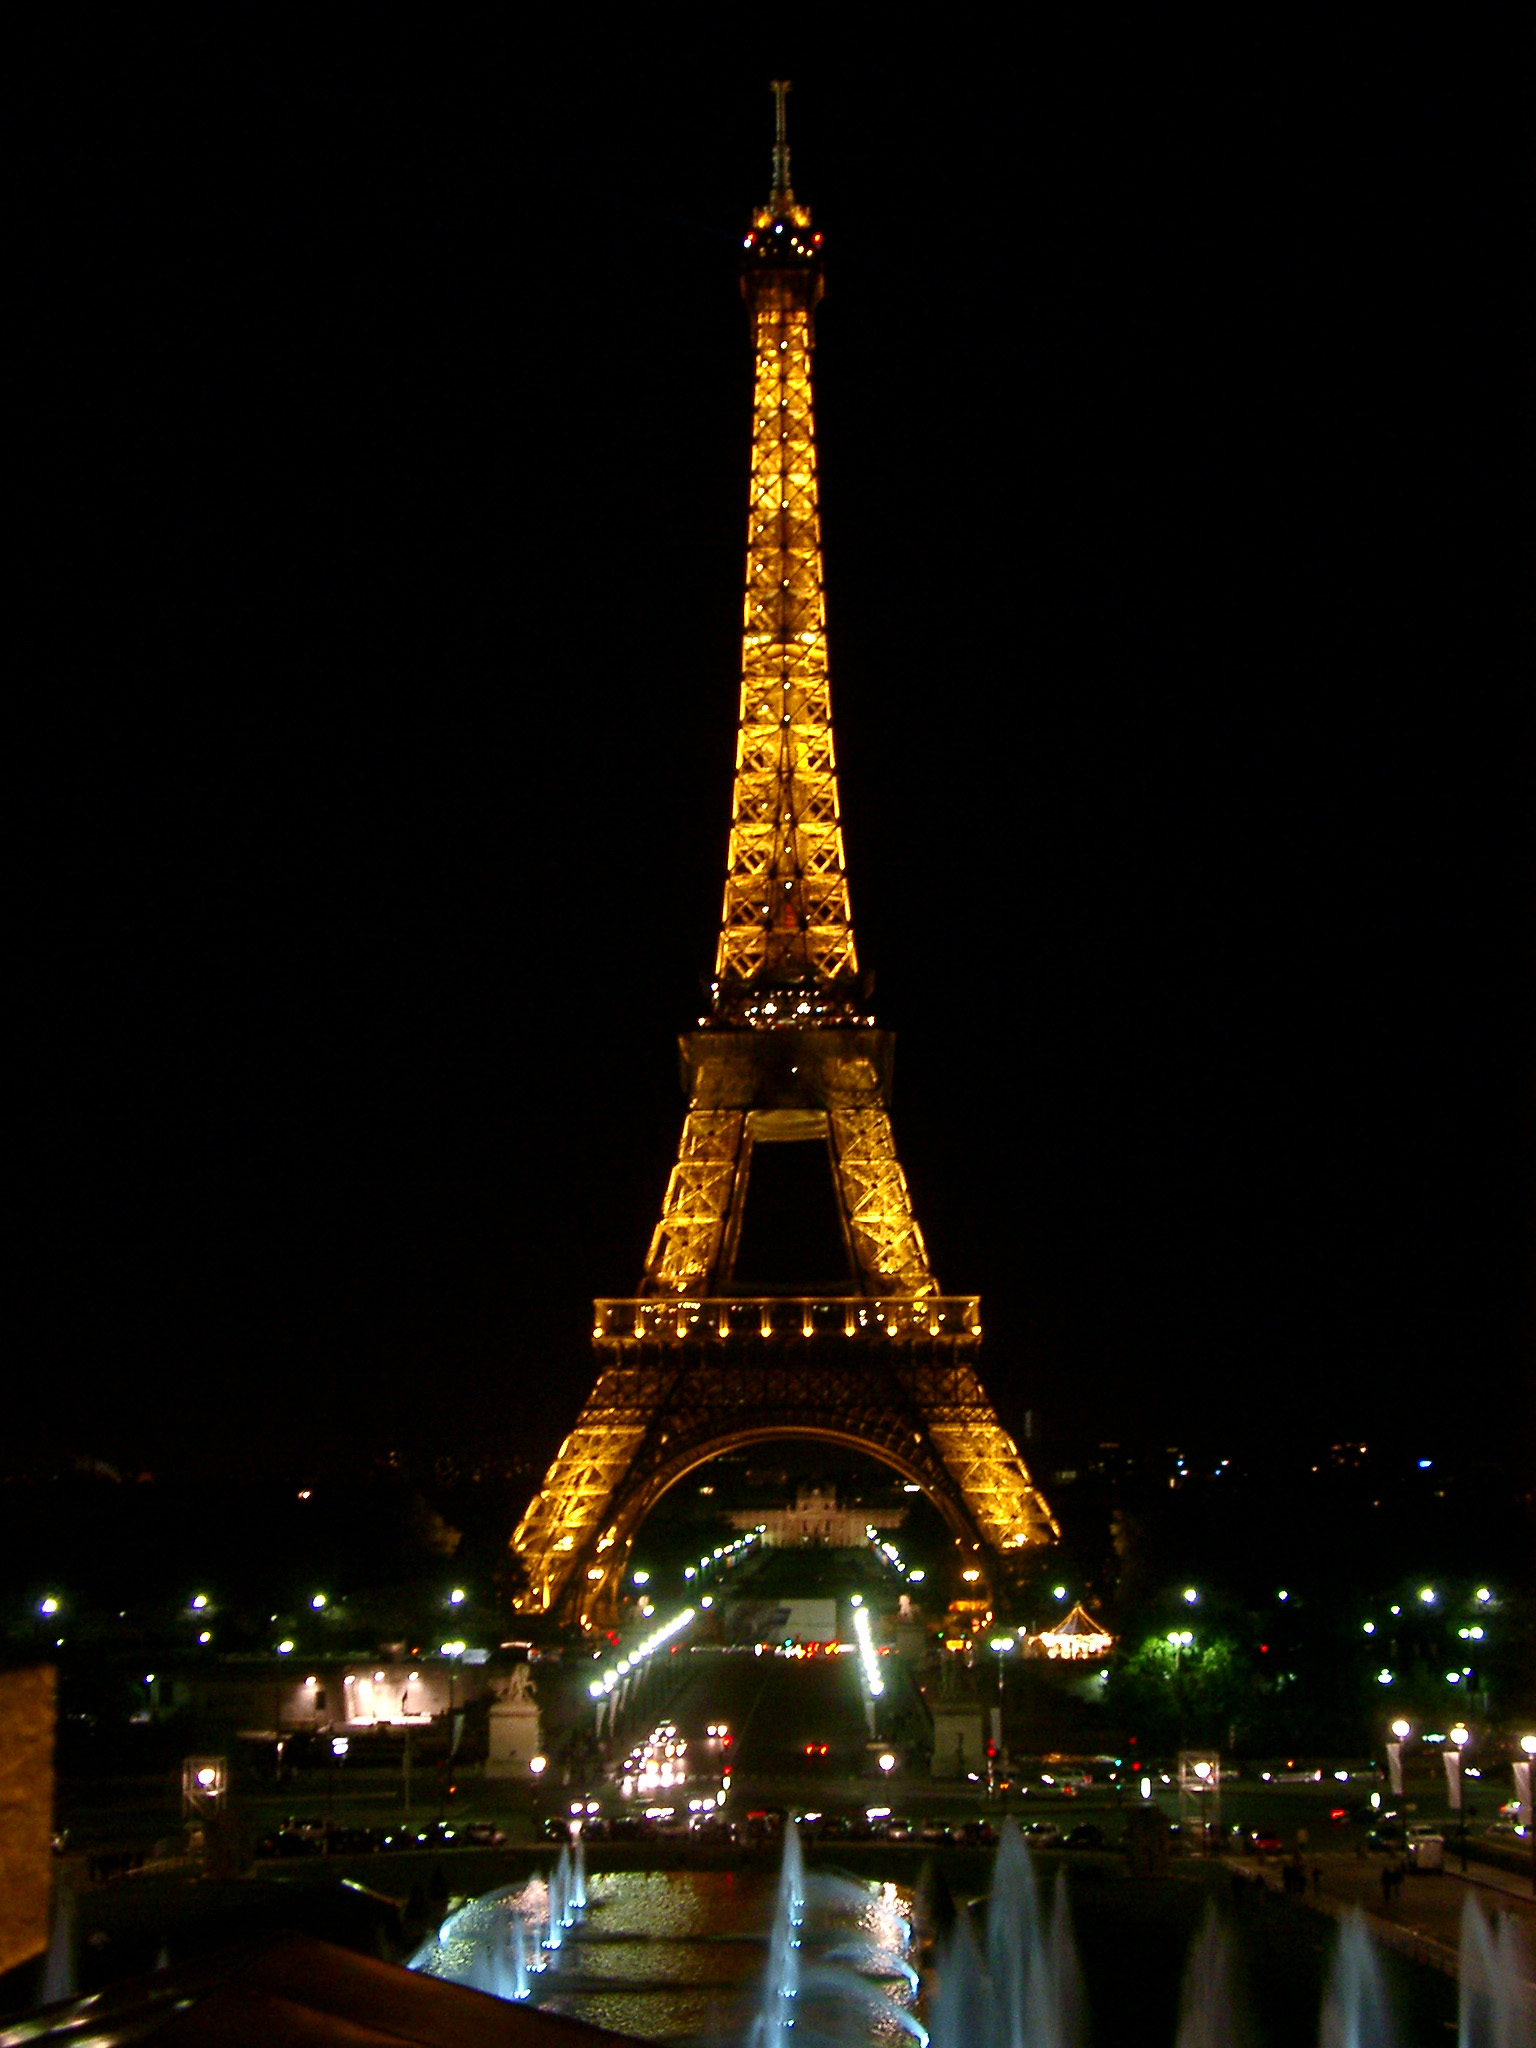 Home west paris photo eiffel tower paris illuminated at night